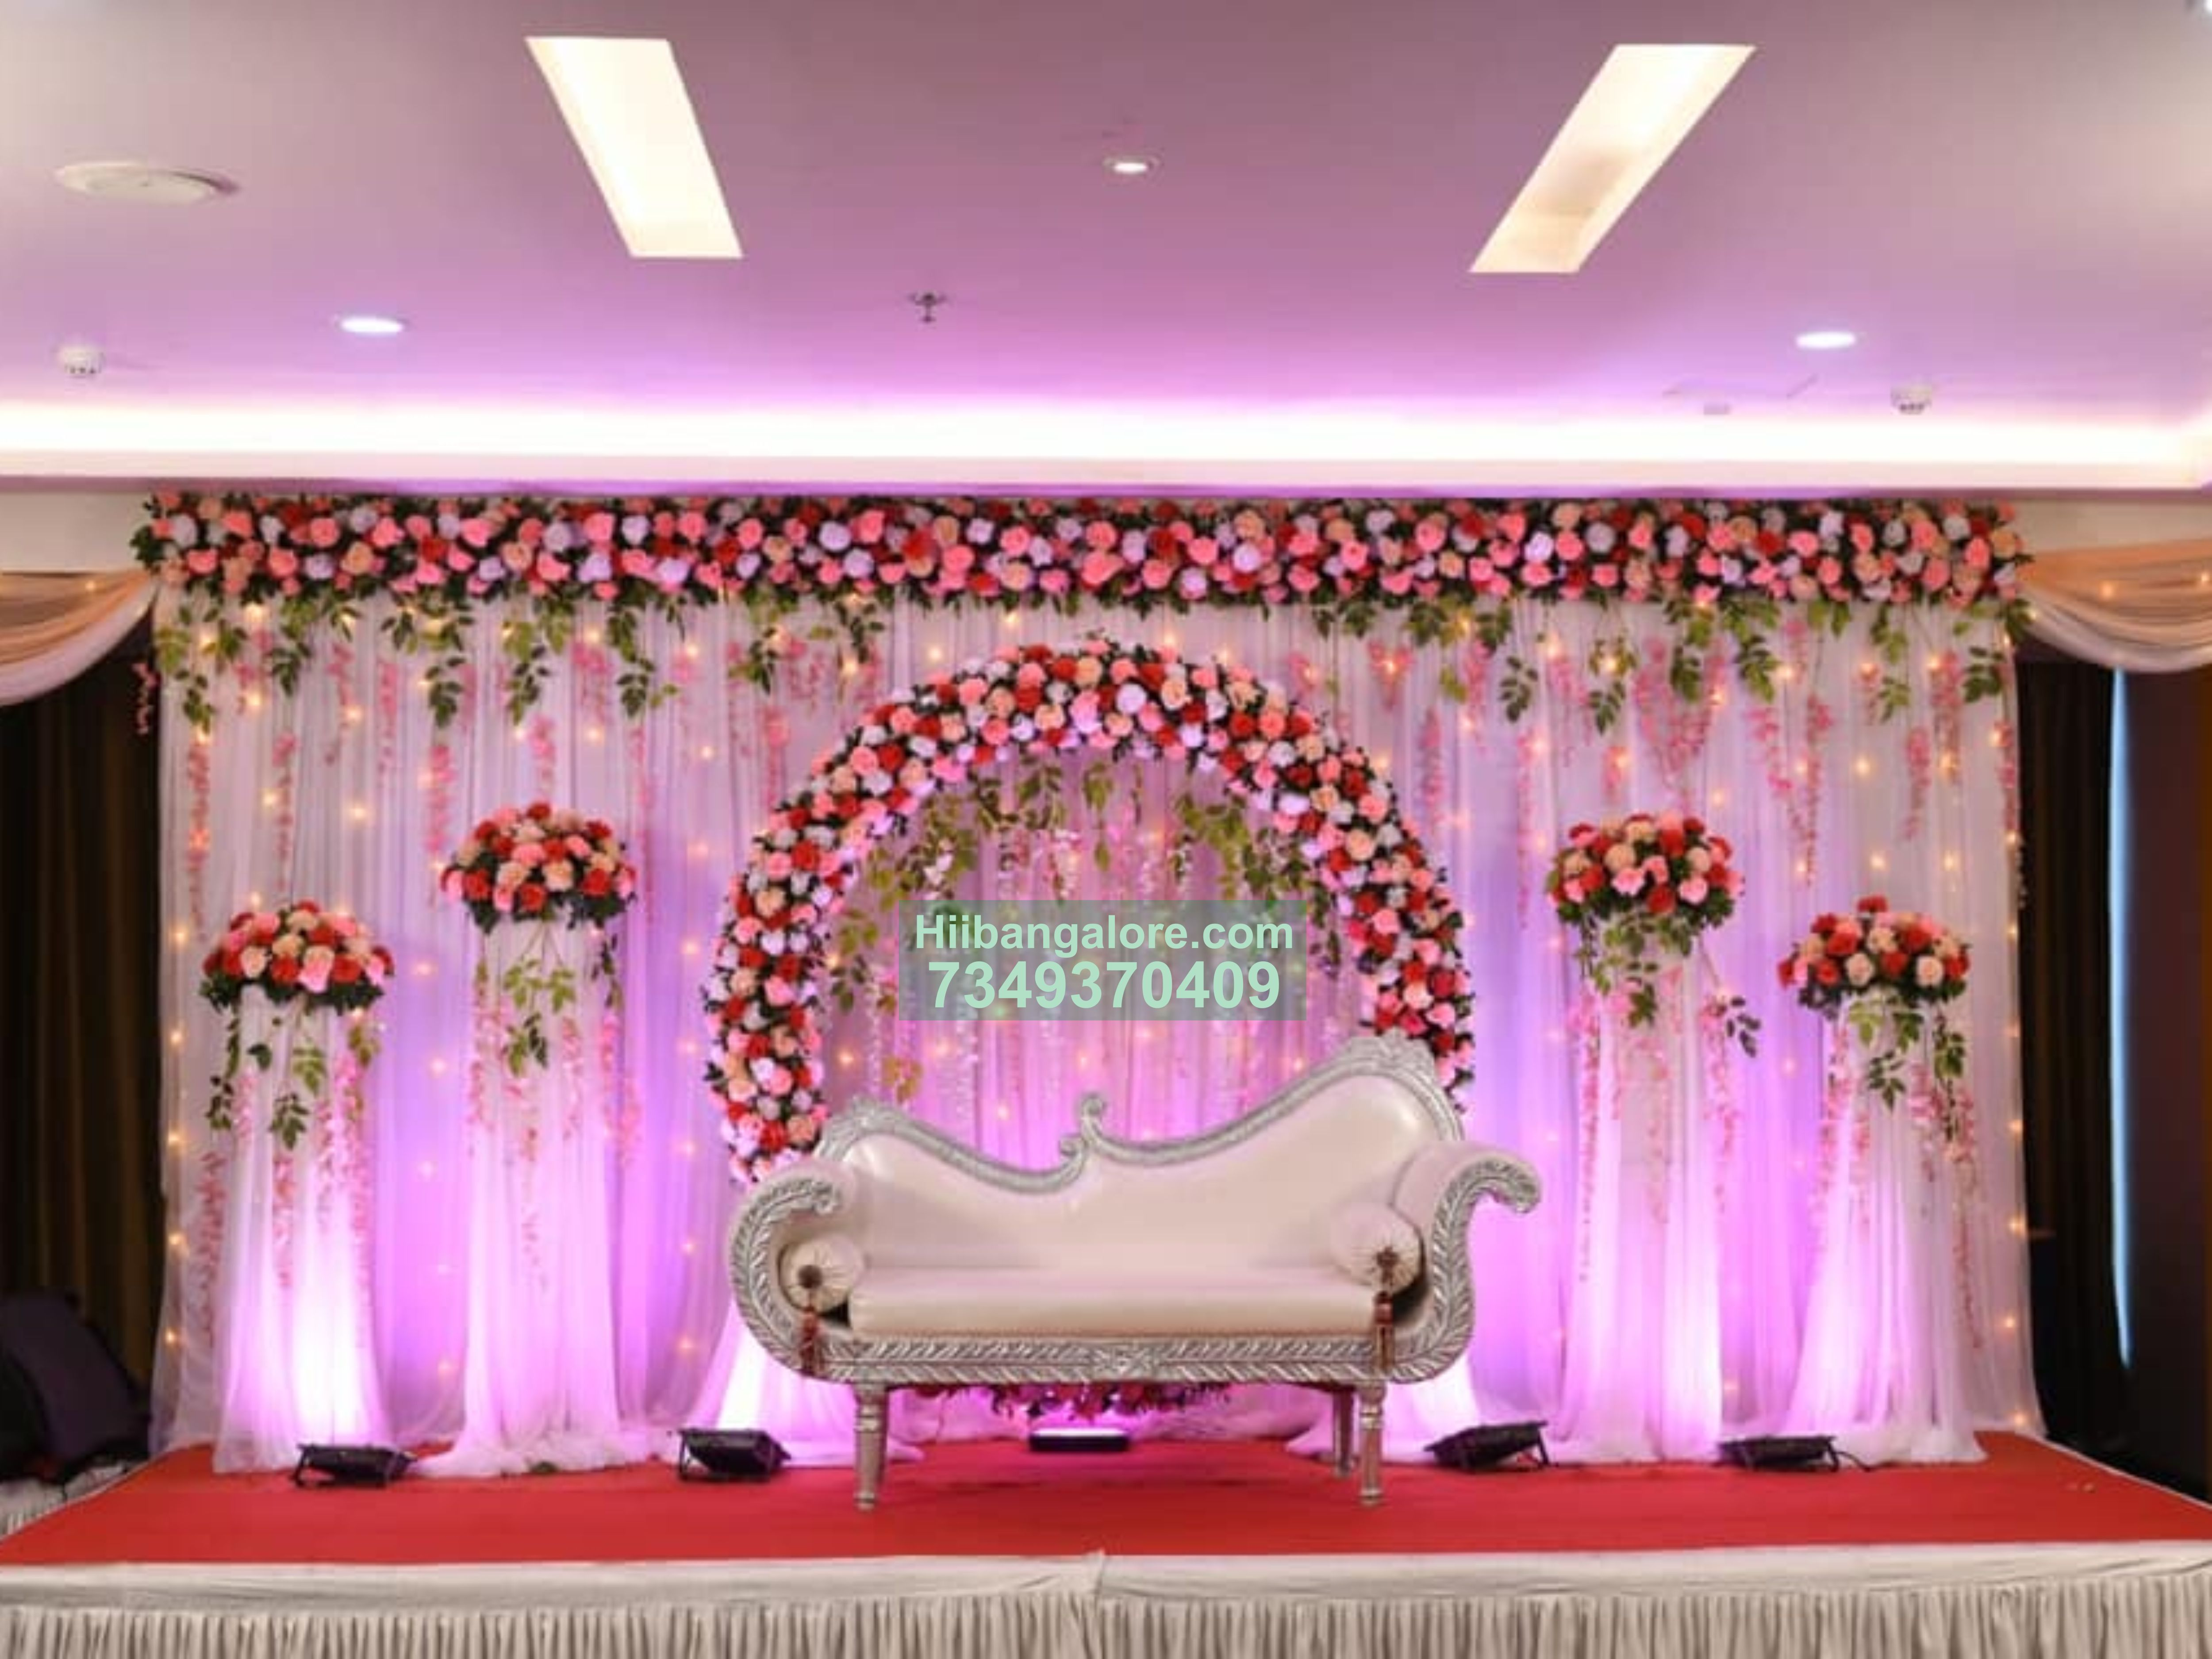 Grand Flower Decoration For Engagement Ceremony Best Birthday Party Organisers Balloon Decorators Birthday Party Caterers In Bangalore